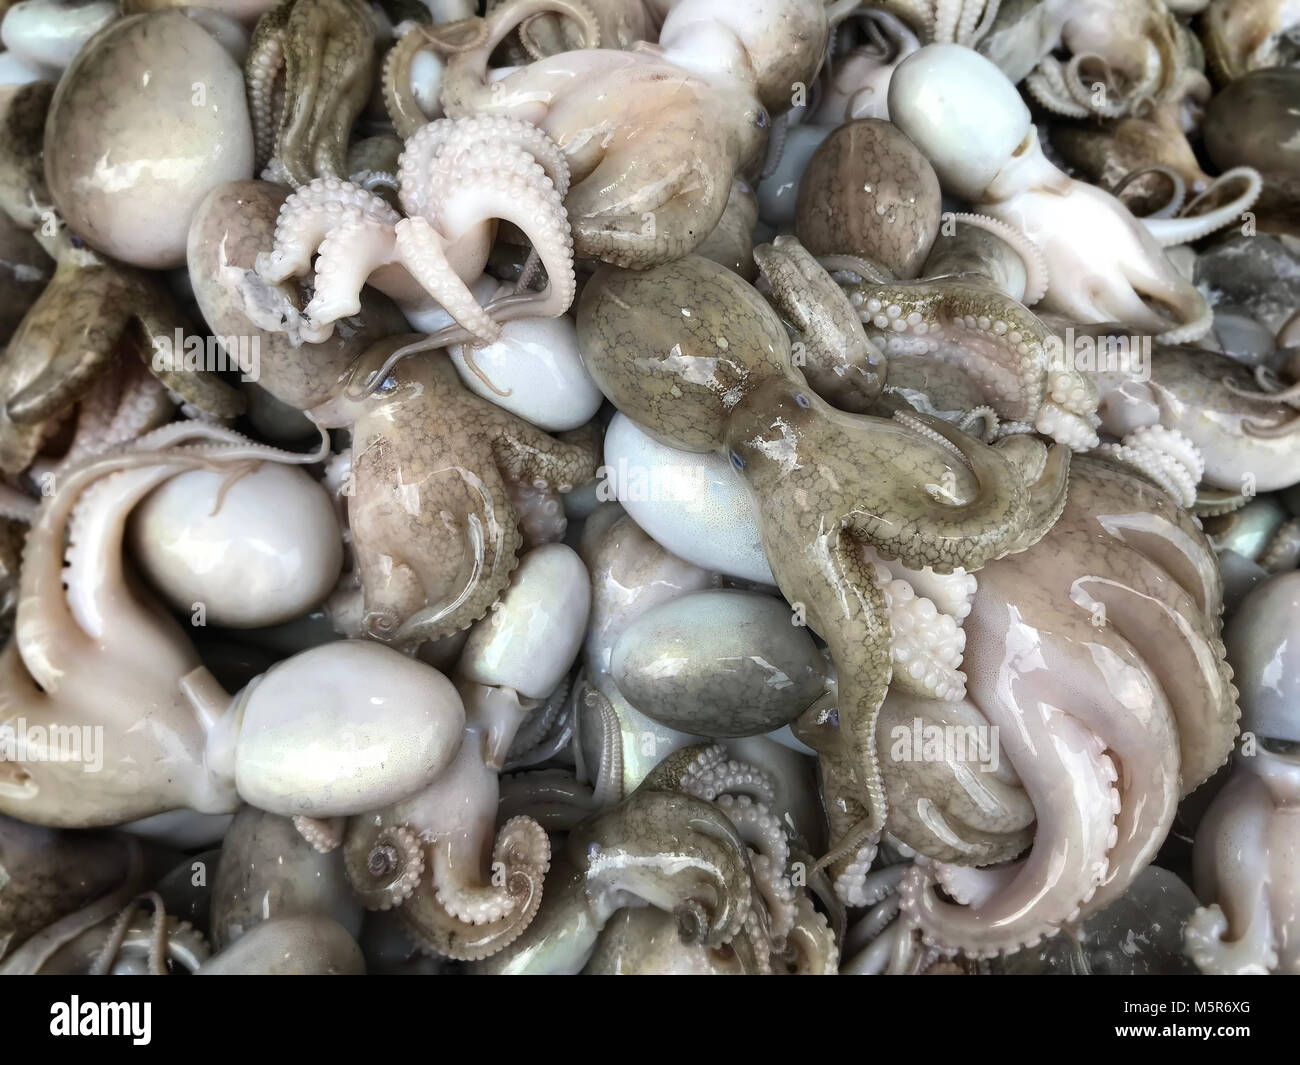 Dollfus octopus for sale at the  fishery market for cooking photo with phone in outdoor low lighting. - Stock Image